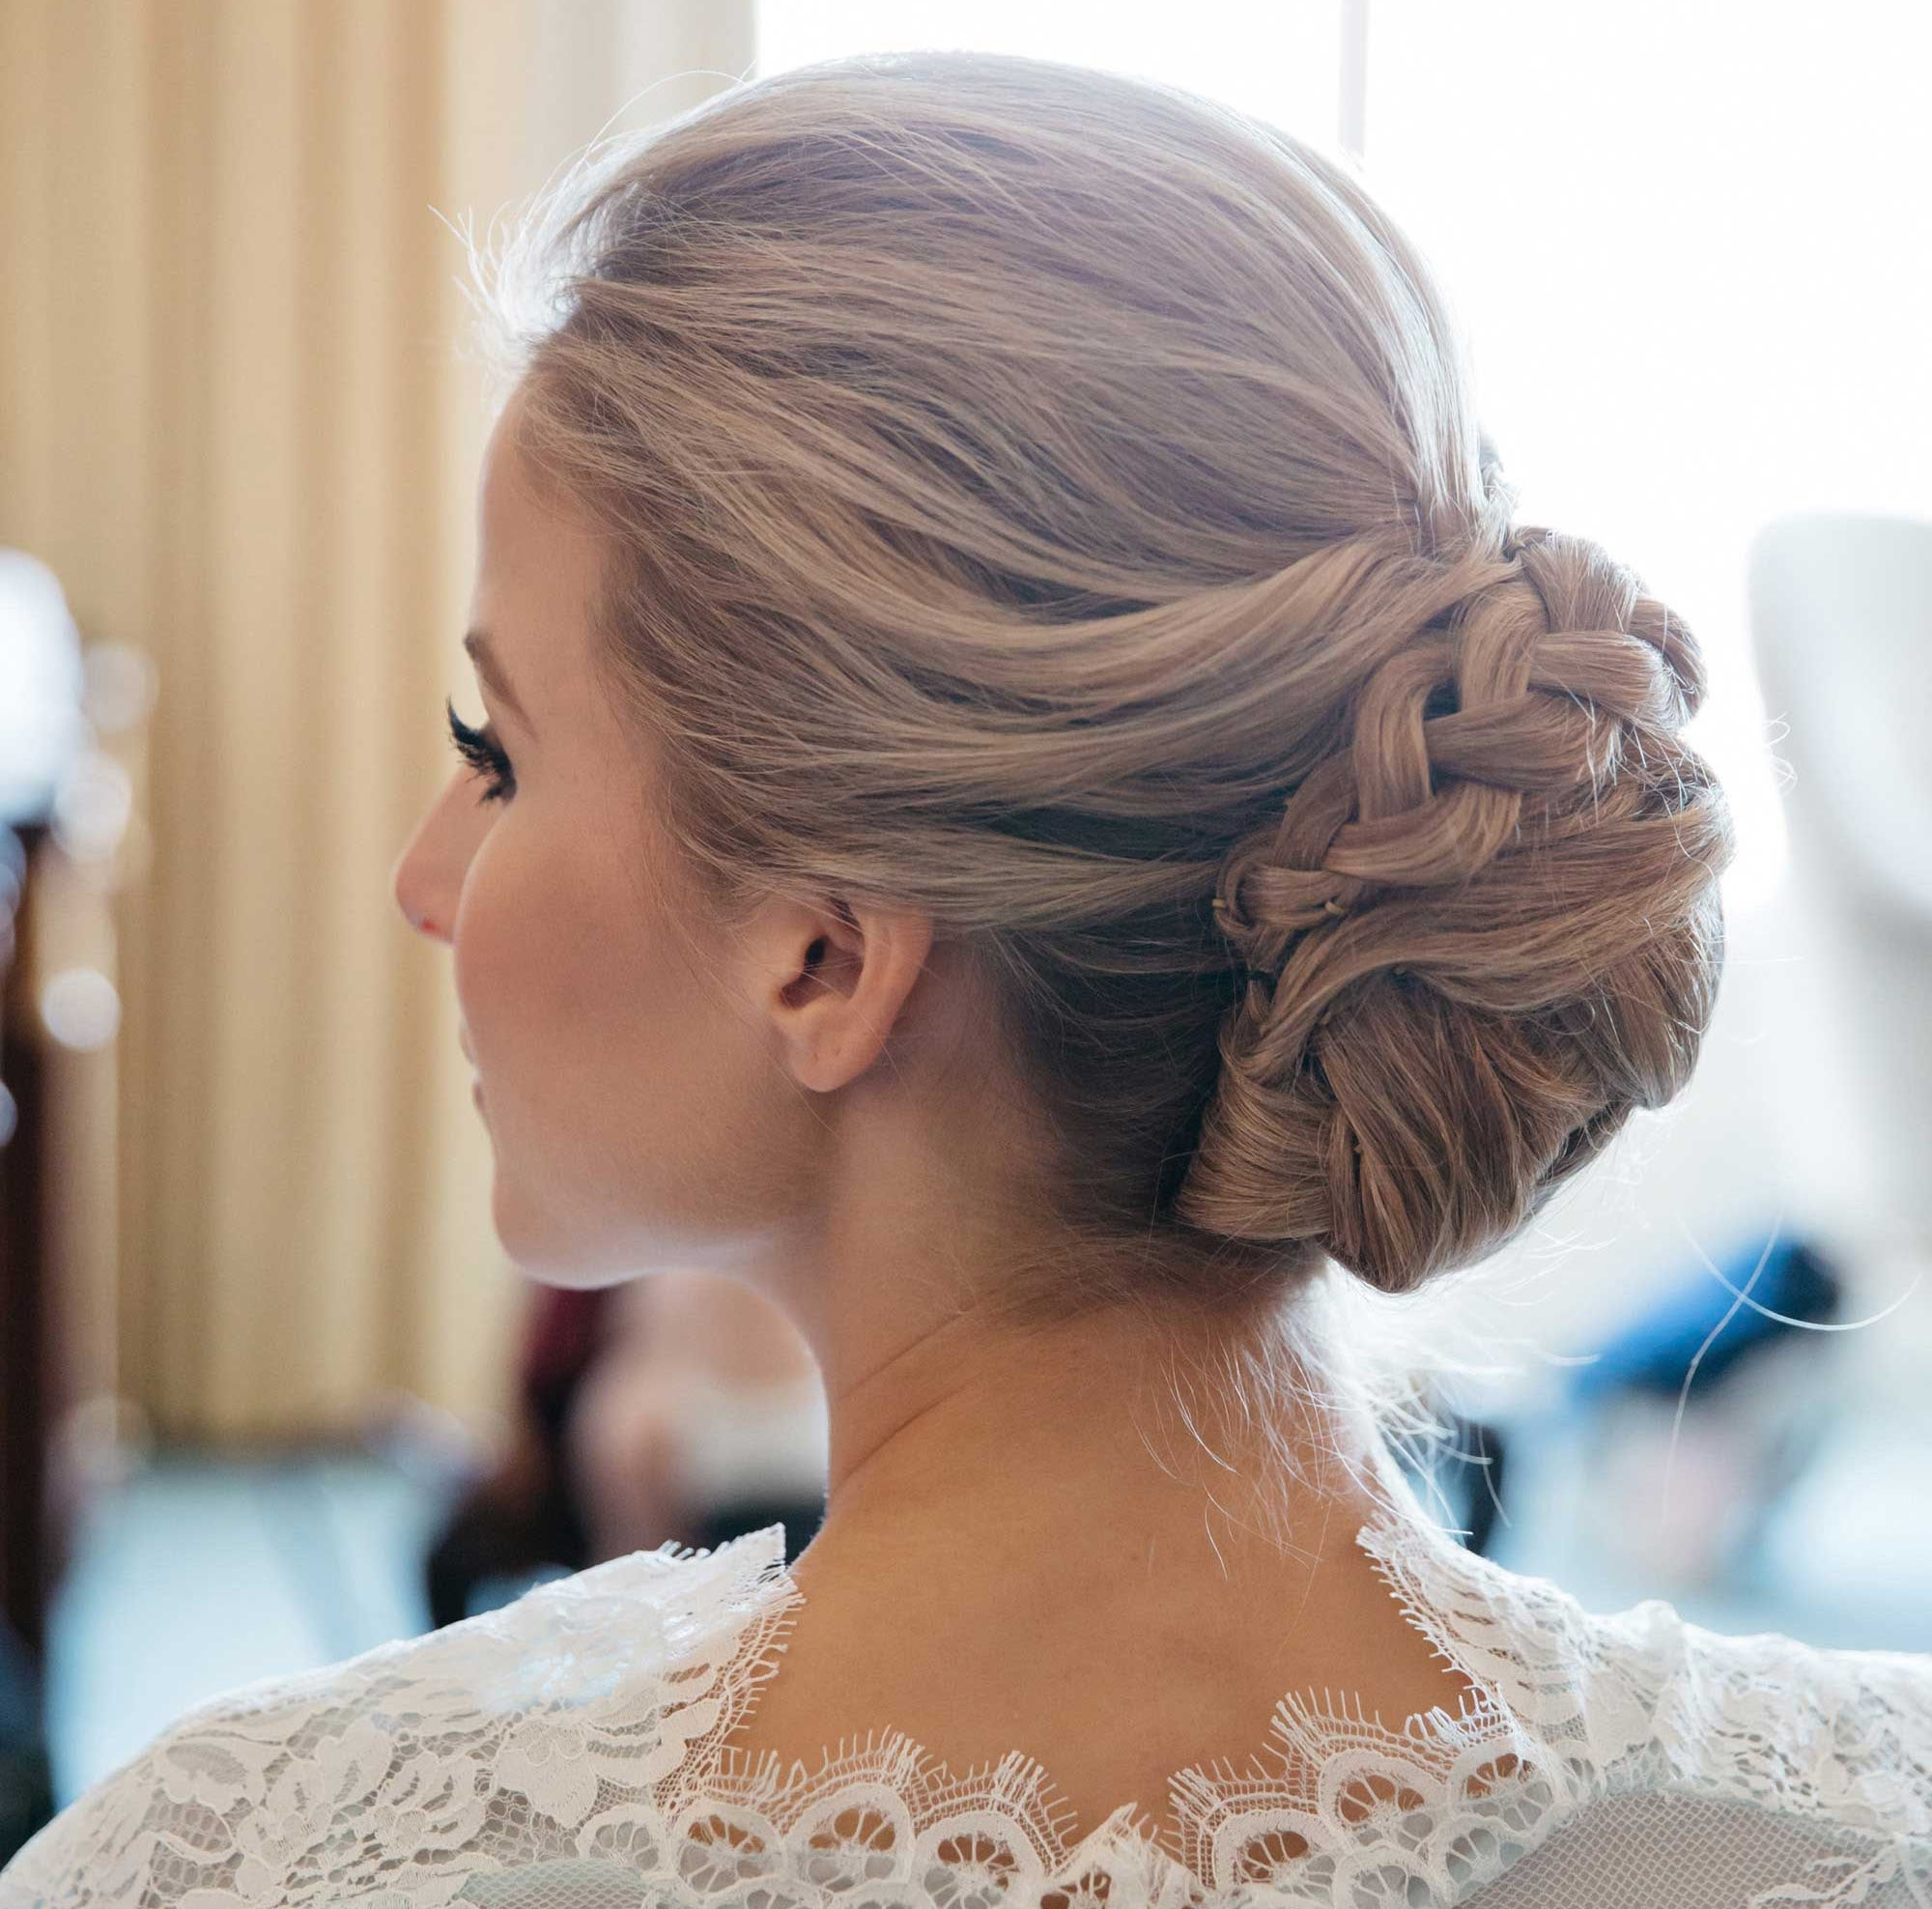 Best And Newest Wedding Braids Hairstyles For Braided Hairstyles: 5 Ideas For Your Wedding Look – Inside Weddings (View 2 of 15)